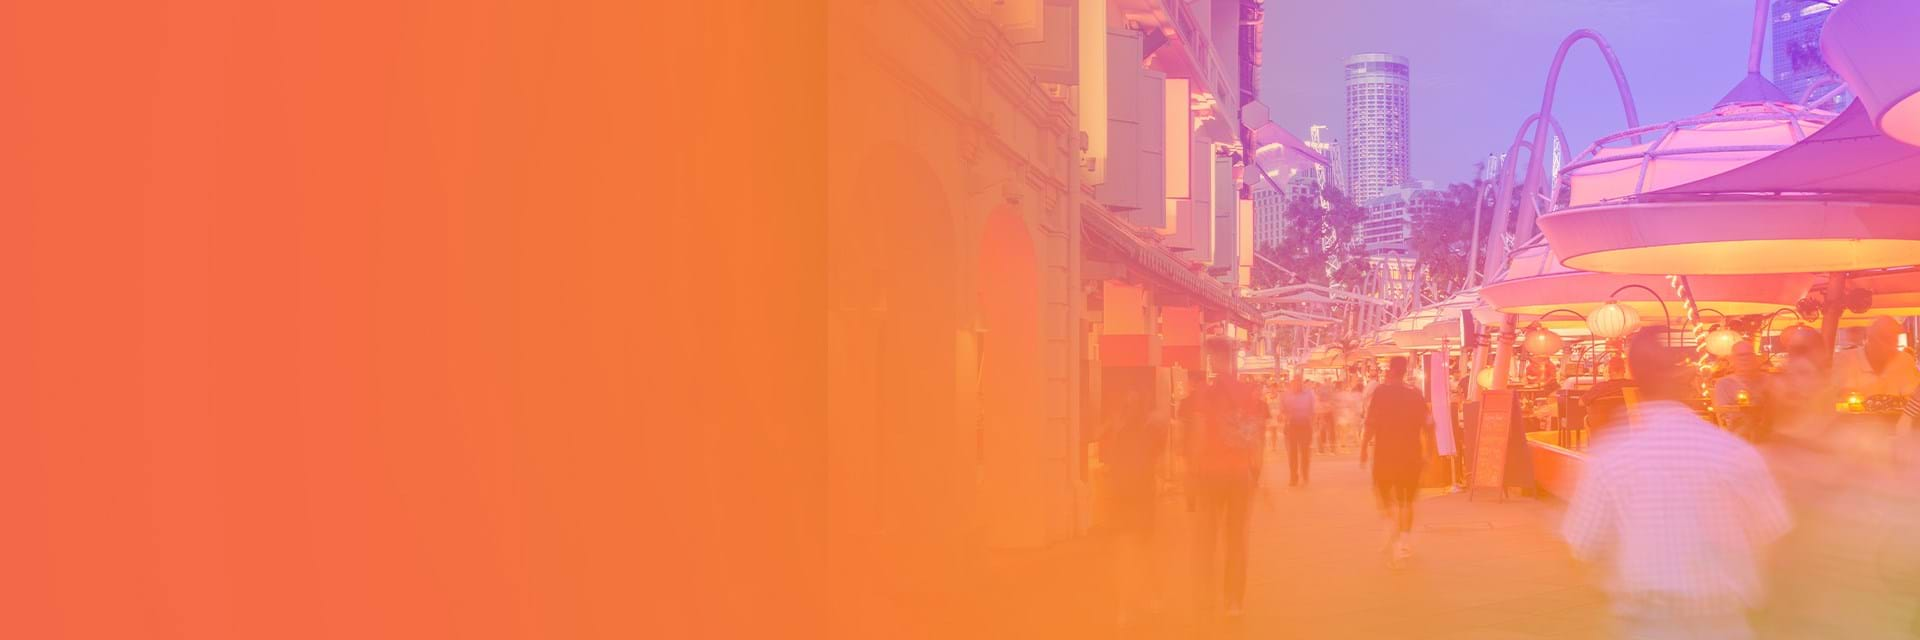 People walking through city - brands in motion report 2021